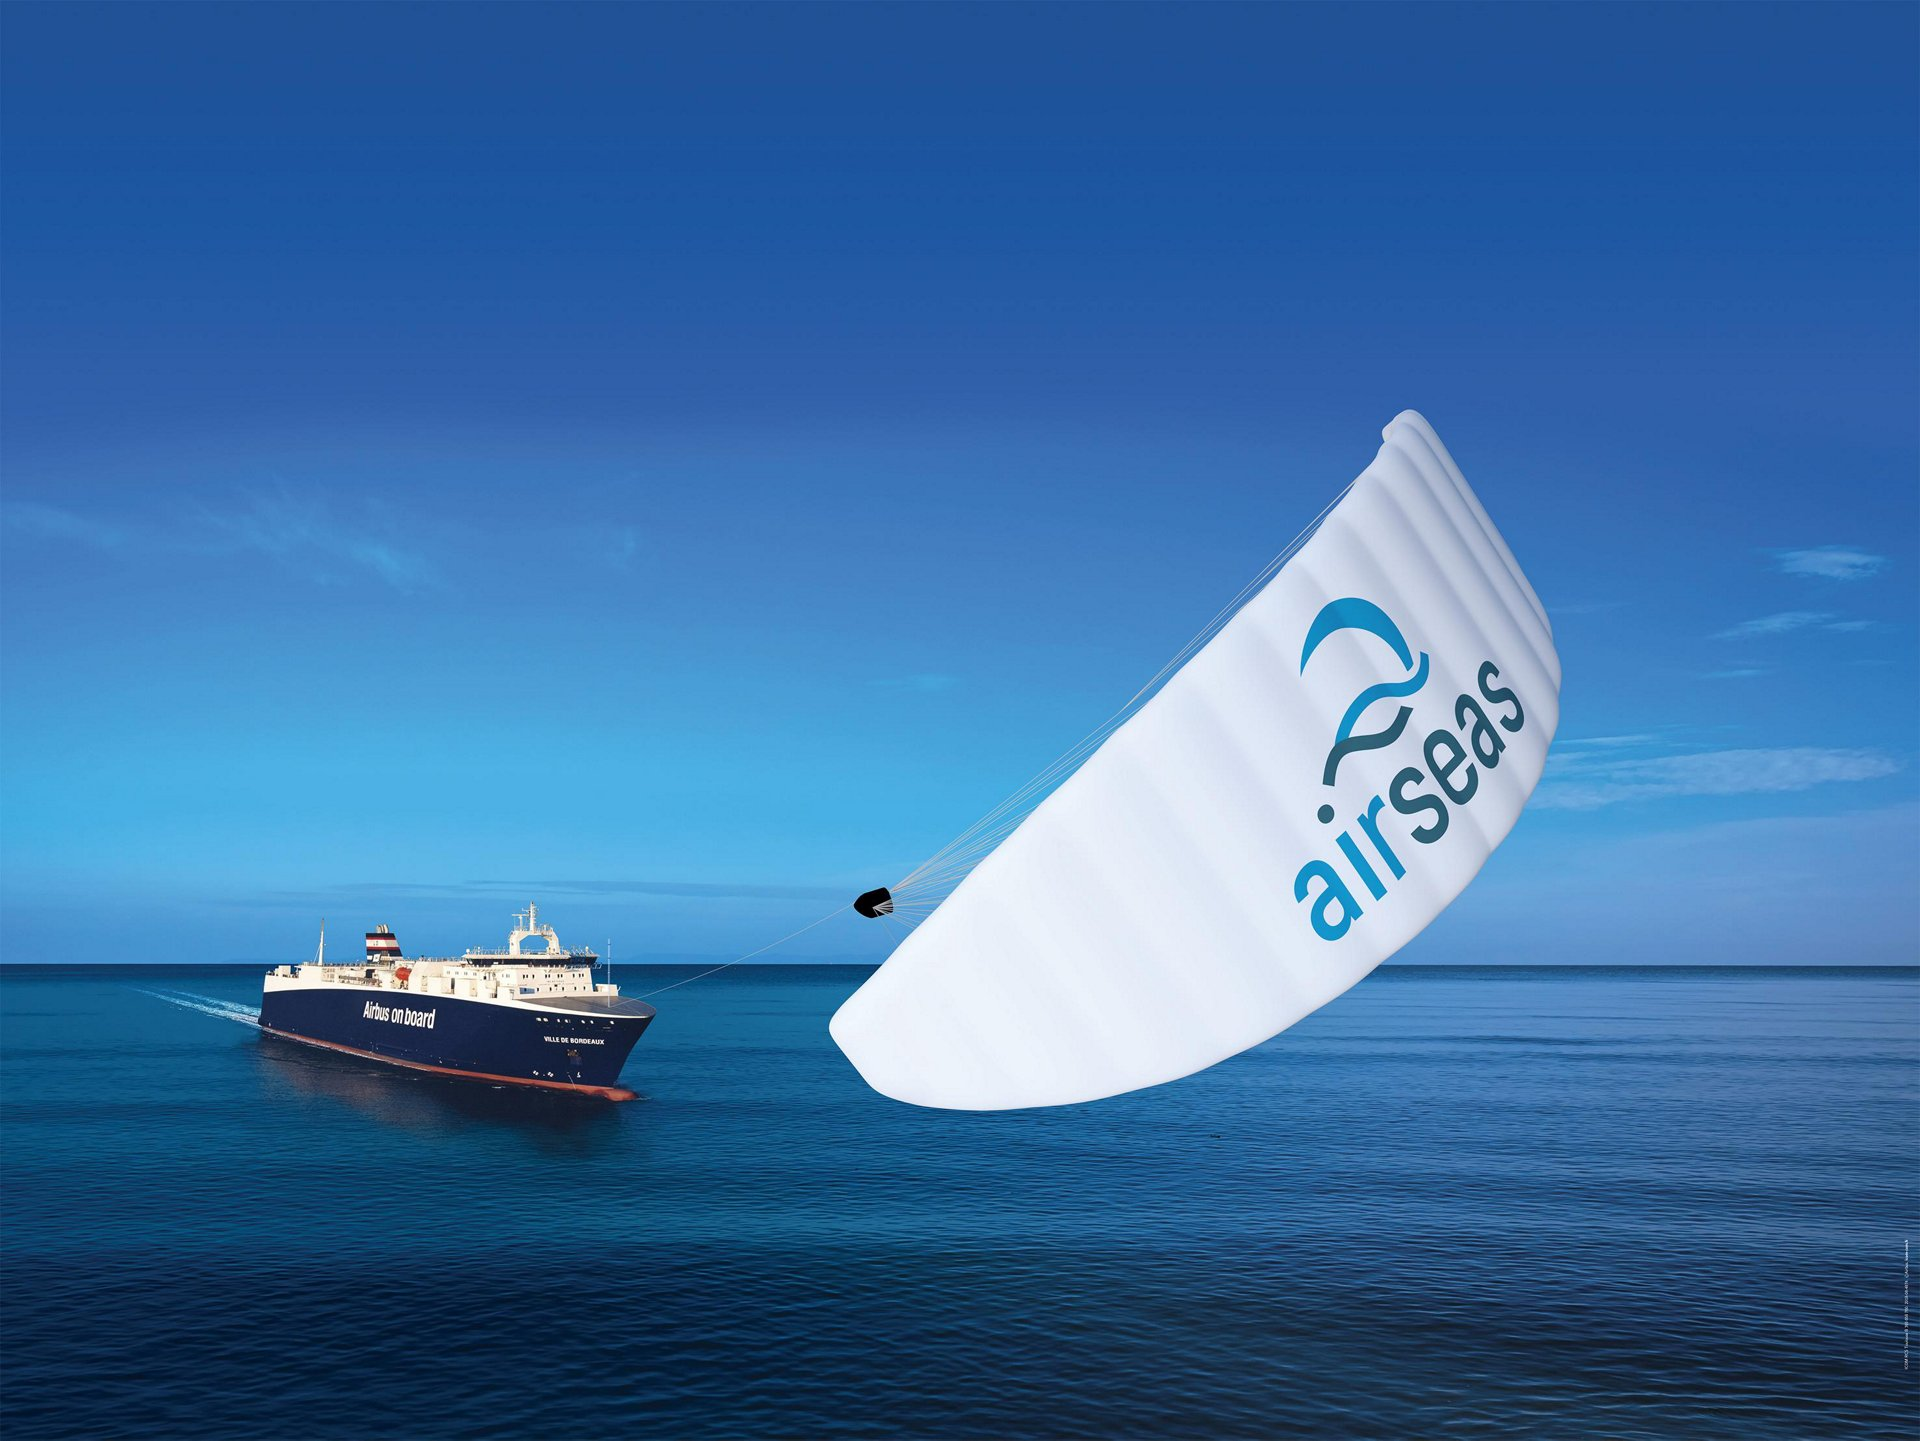 The SeaWing automated kite, which uses parafoil technology to tow large commercial ships, has been ordered from AirSeas – a small Airbus startup – to equip Airbus' own roll-on/roll-off (ro-ro) ships that transport large aircraft parts among its production sites